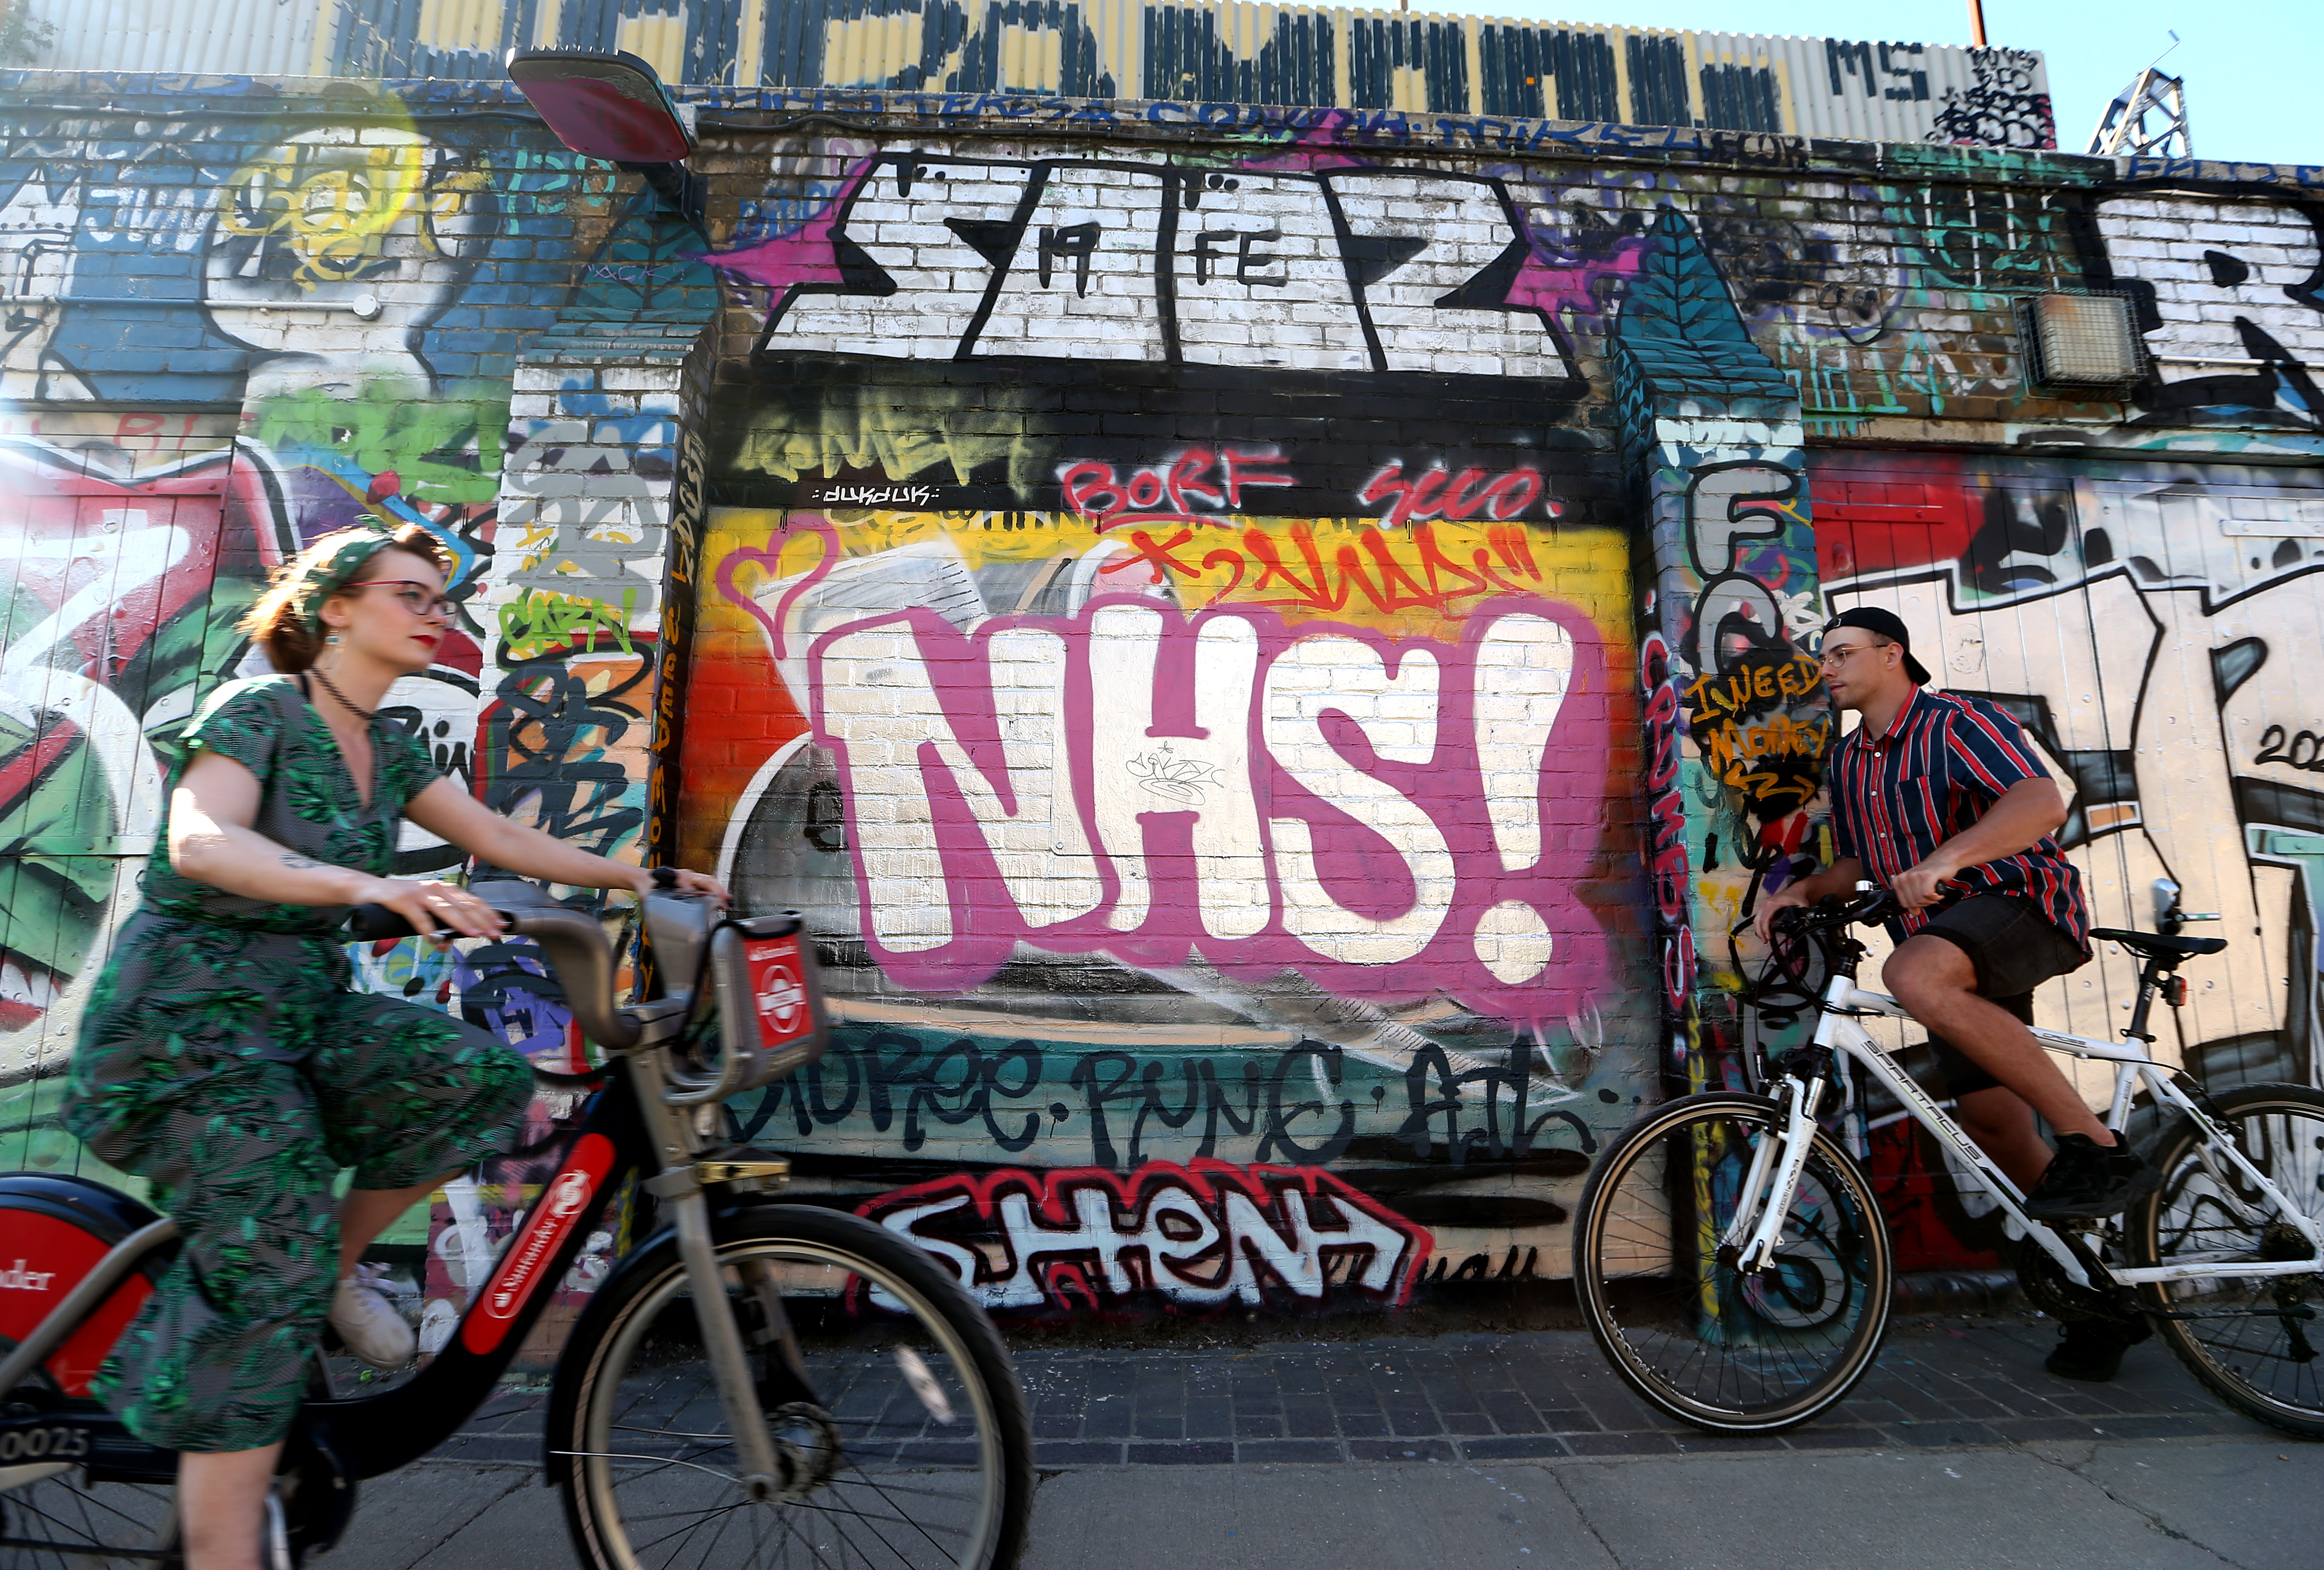 LONDON, ENGLAND  - MAY 31: Cyclists pass graffiti reading 'NHS'  in Hackney Wick on May 31, 2020 in London, England. The British government continues to ease the coronavirus lockdown by announcing schools will open to reception year pupils plus years one and six from June 1st. Open-air markets and car showrooms can also open from the same date.  (Photo by Alex Pantling/Getty Images)